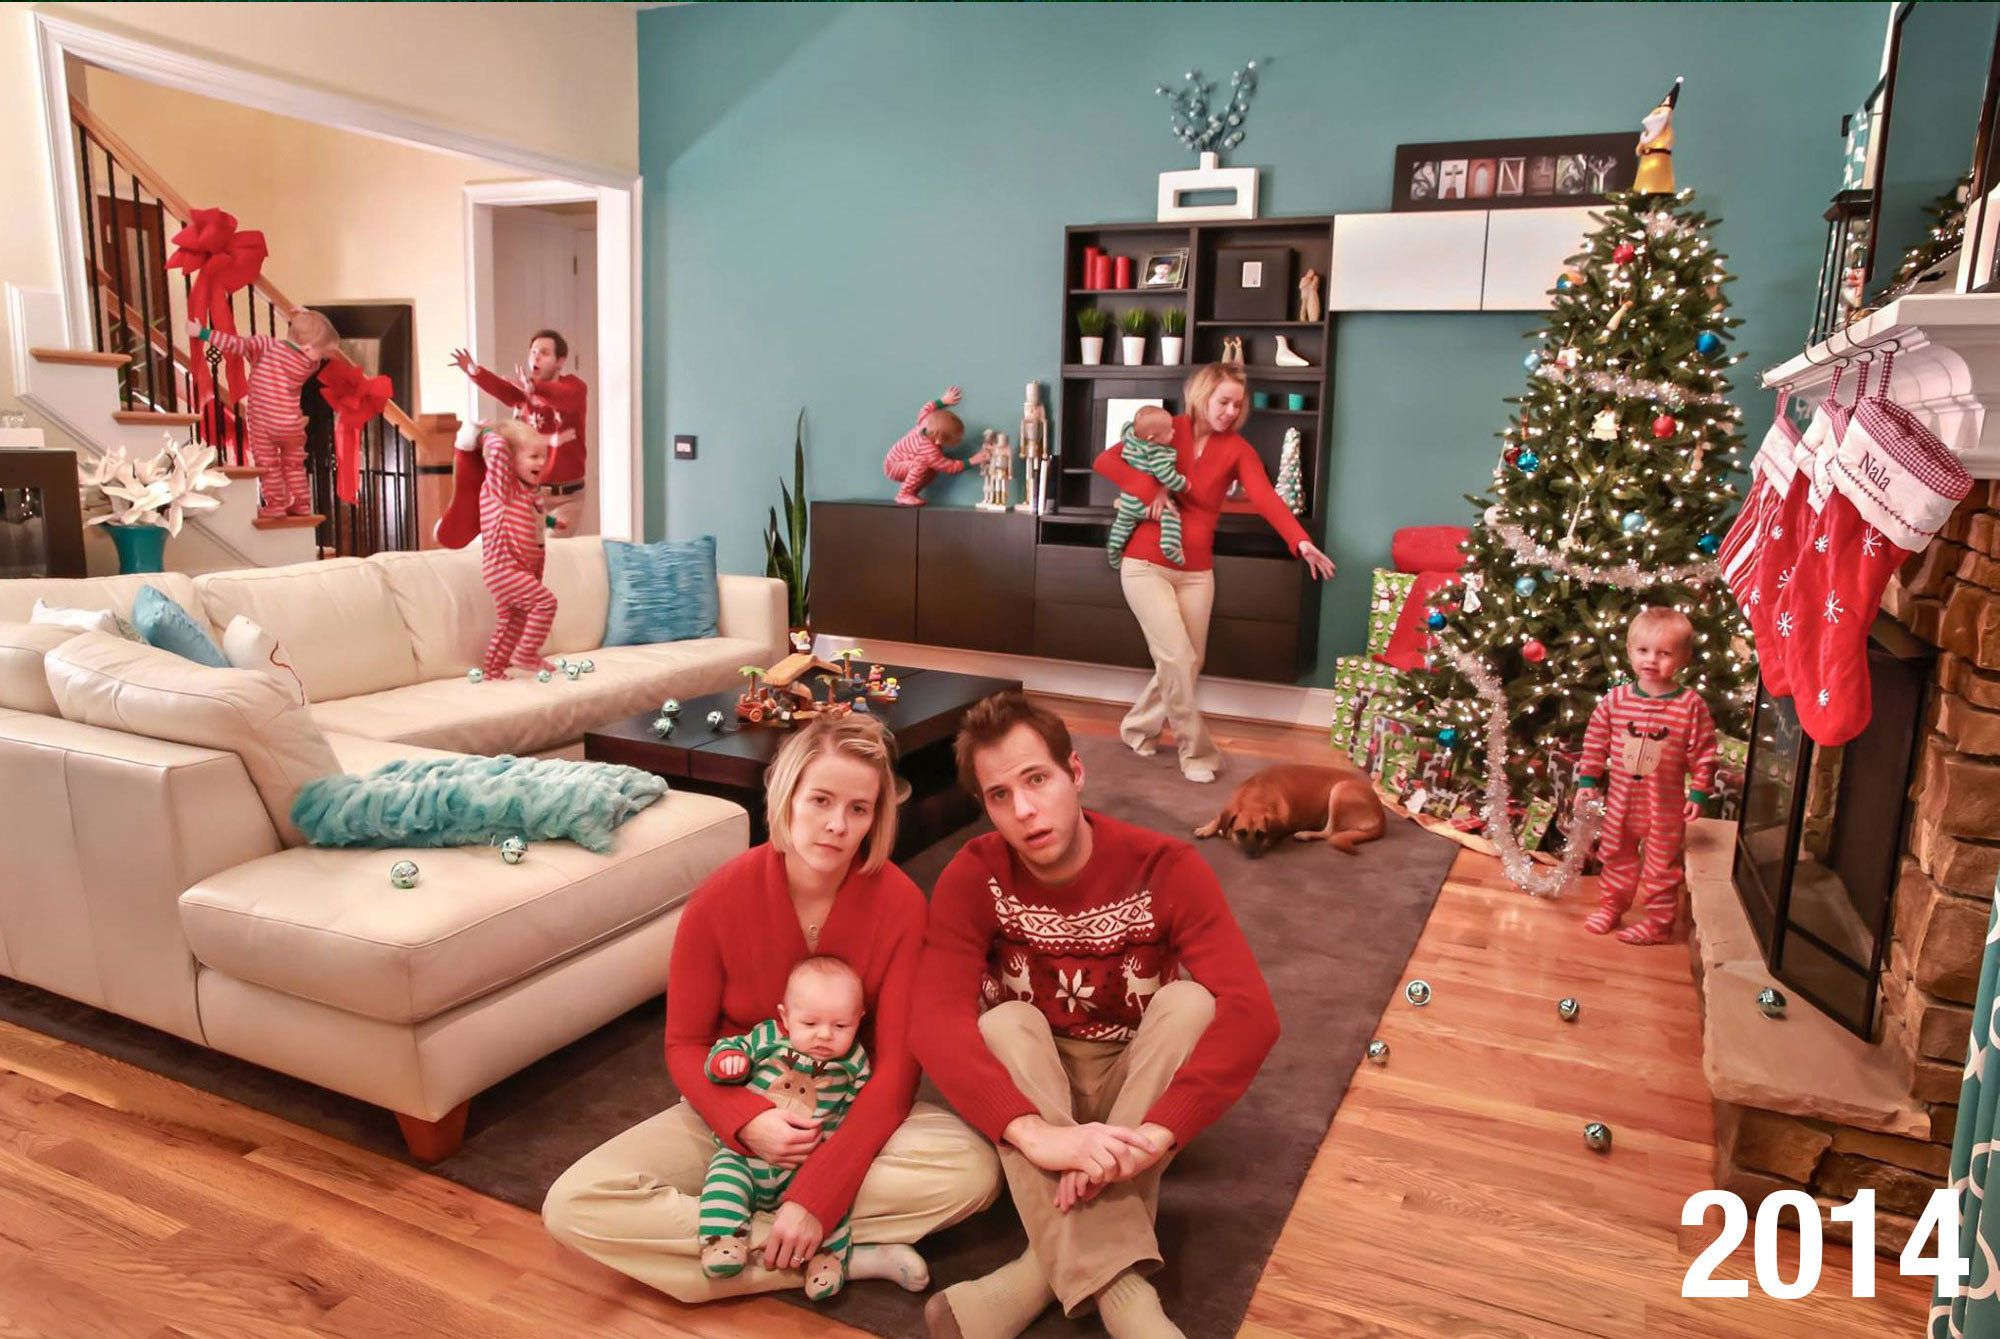 Jonathan Stanley's family prefers to send funny holiday cards over the seemingly picture-perfect ones.